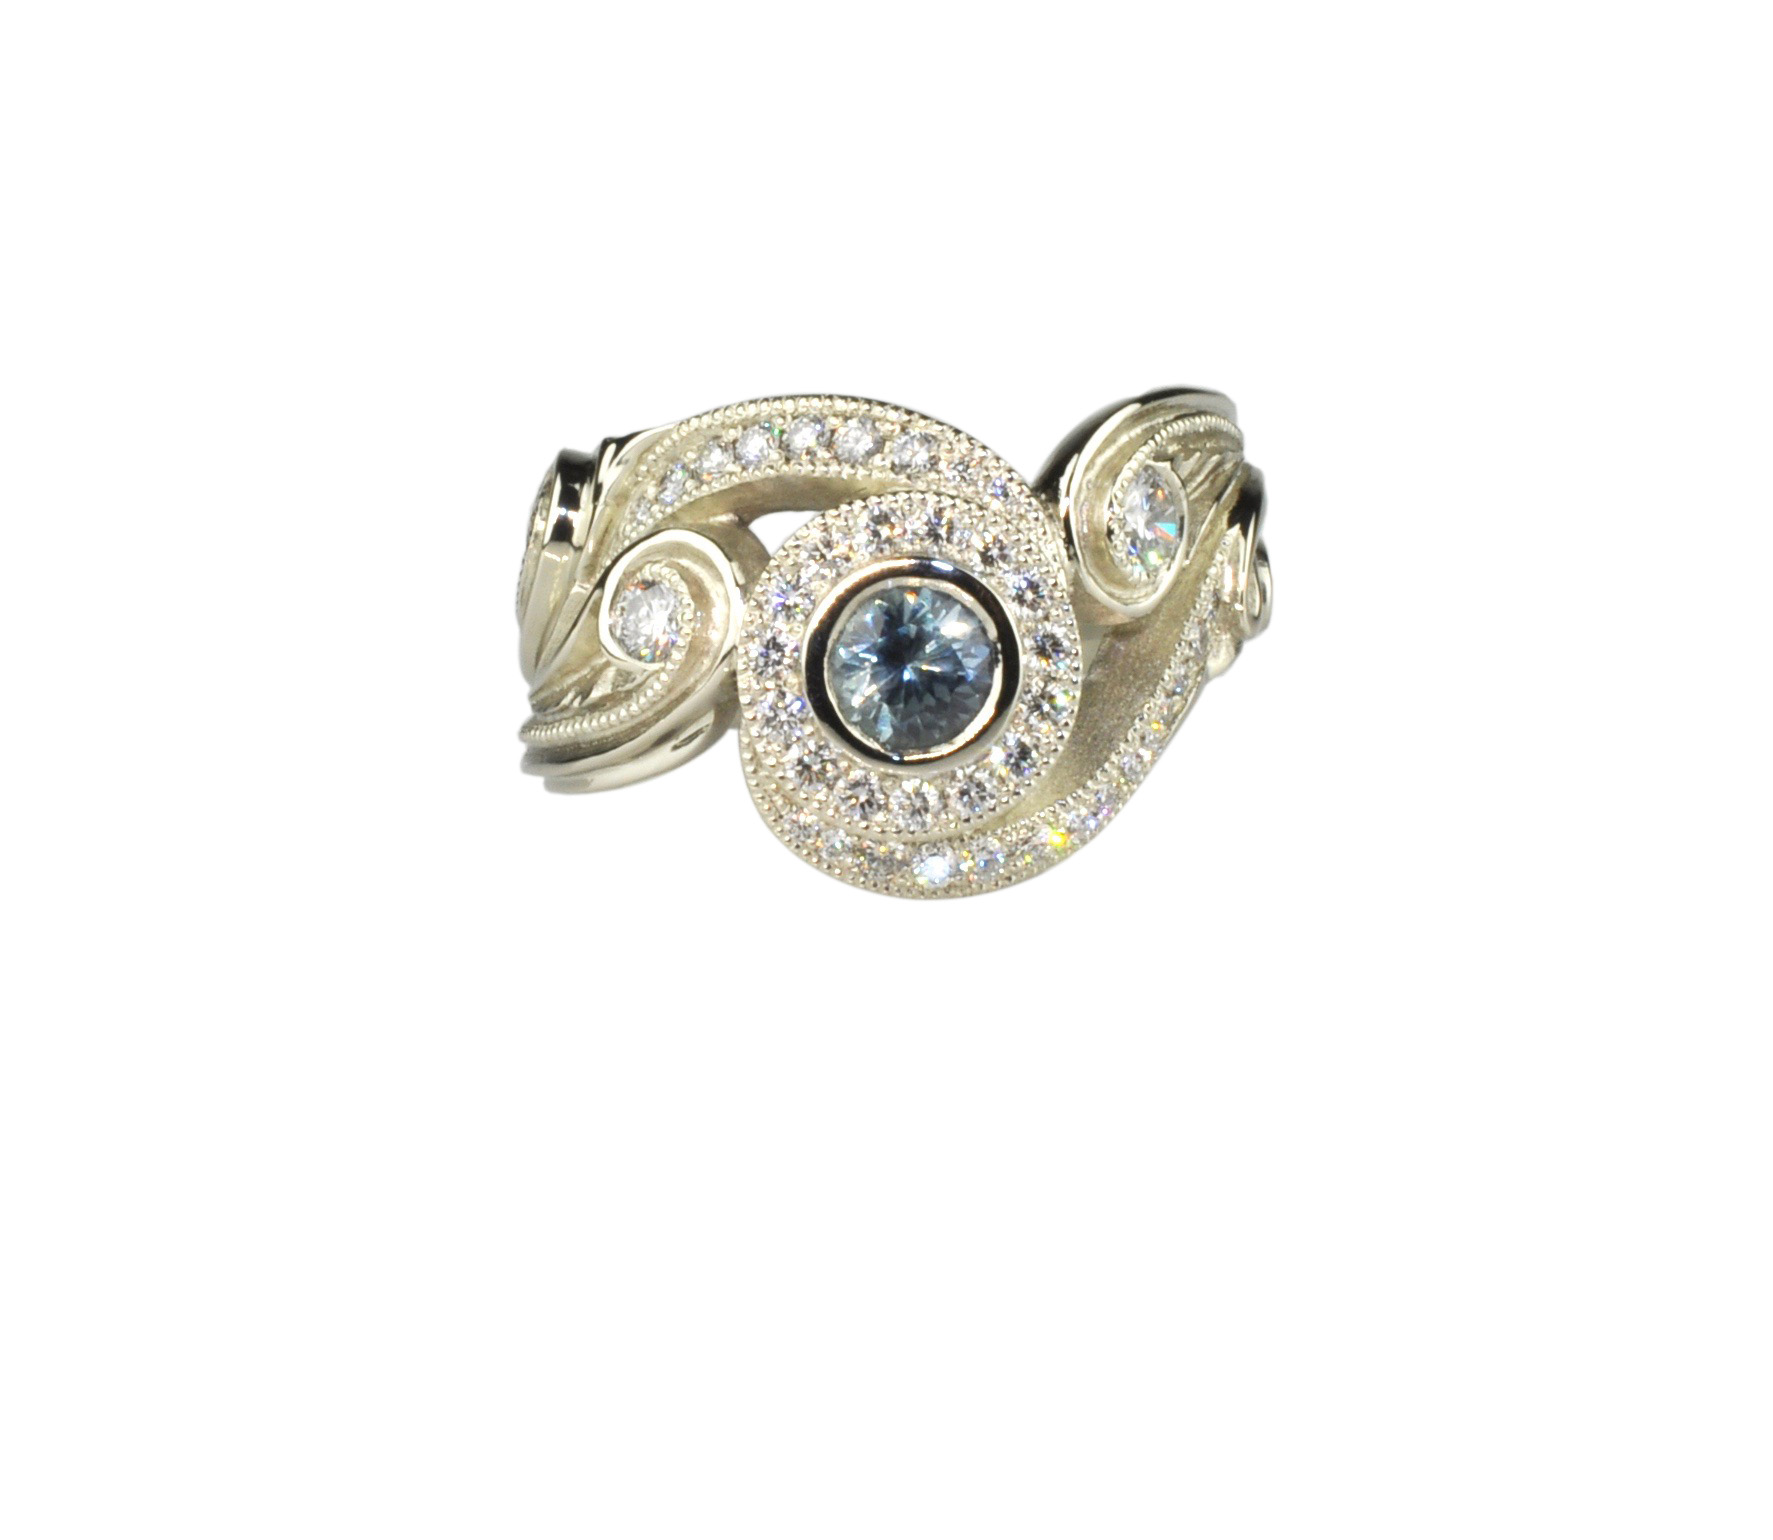 18k White Gold Band with Montana Sapphire and Diamonds